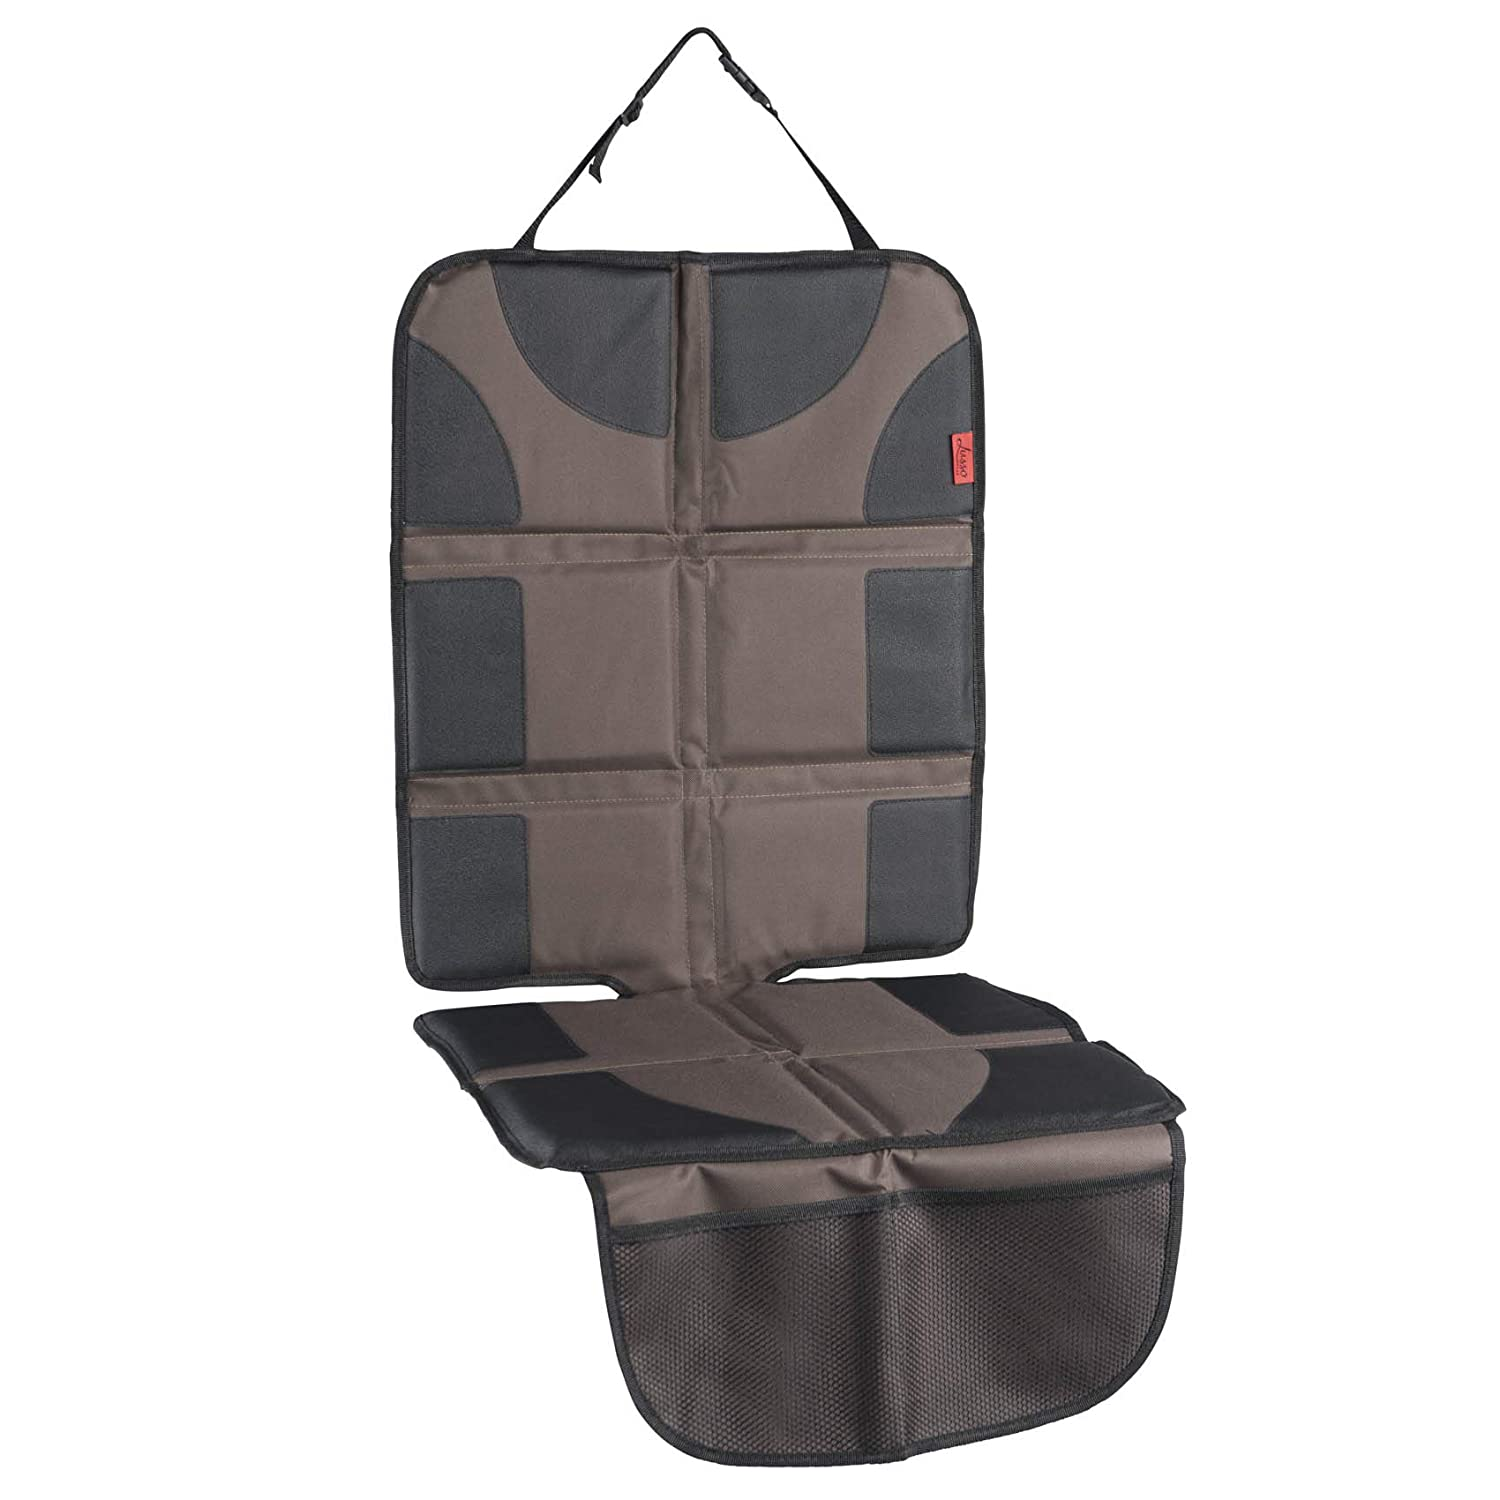 PVC Leather Reinforced Corners /& 2 Large Pockets for Handy Storage Car Seat Protector with Thickest Padding Featuring XL Size Best Coverage Available Waterproof 600D Fabric Durable